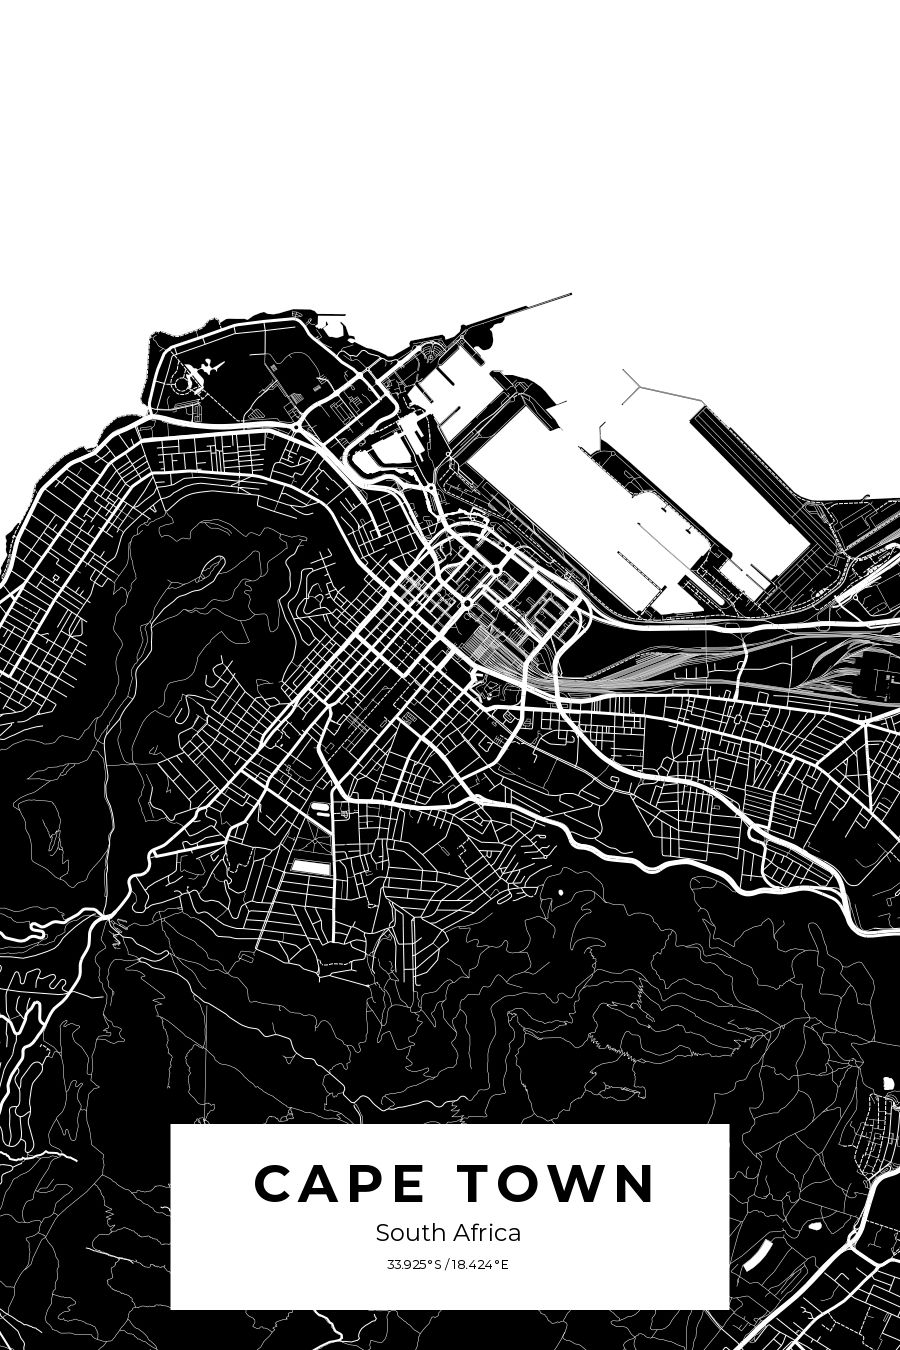 Custom city map poster of Cape Town, South Africa in black and